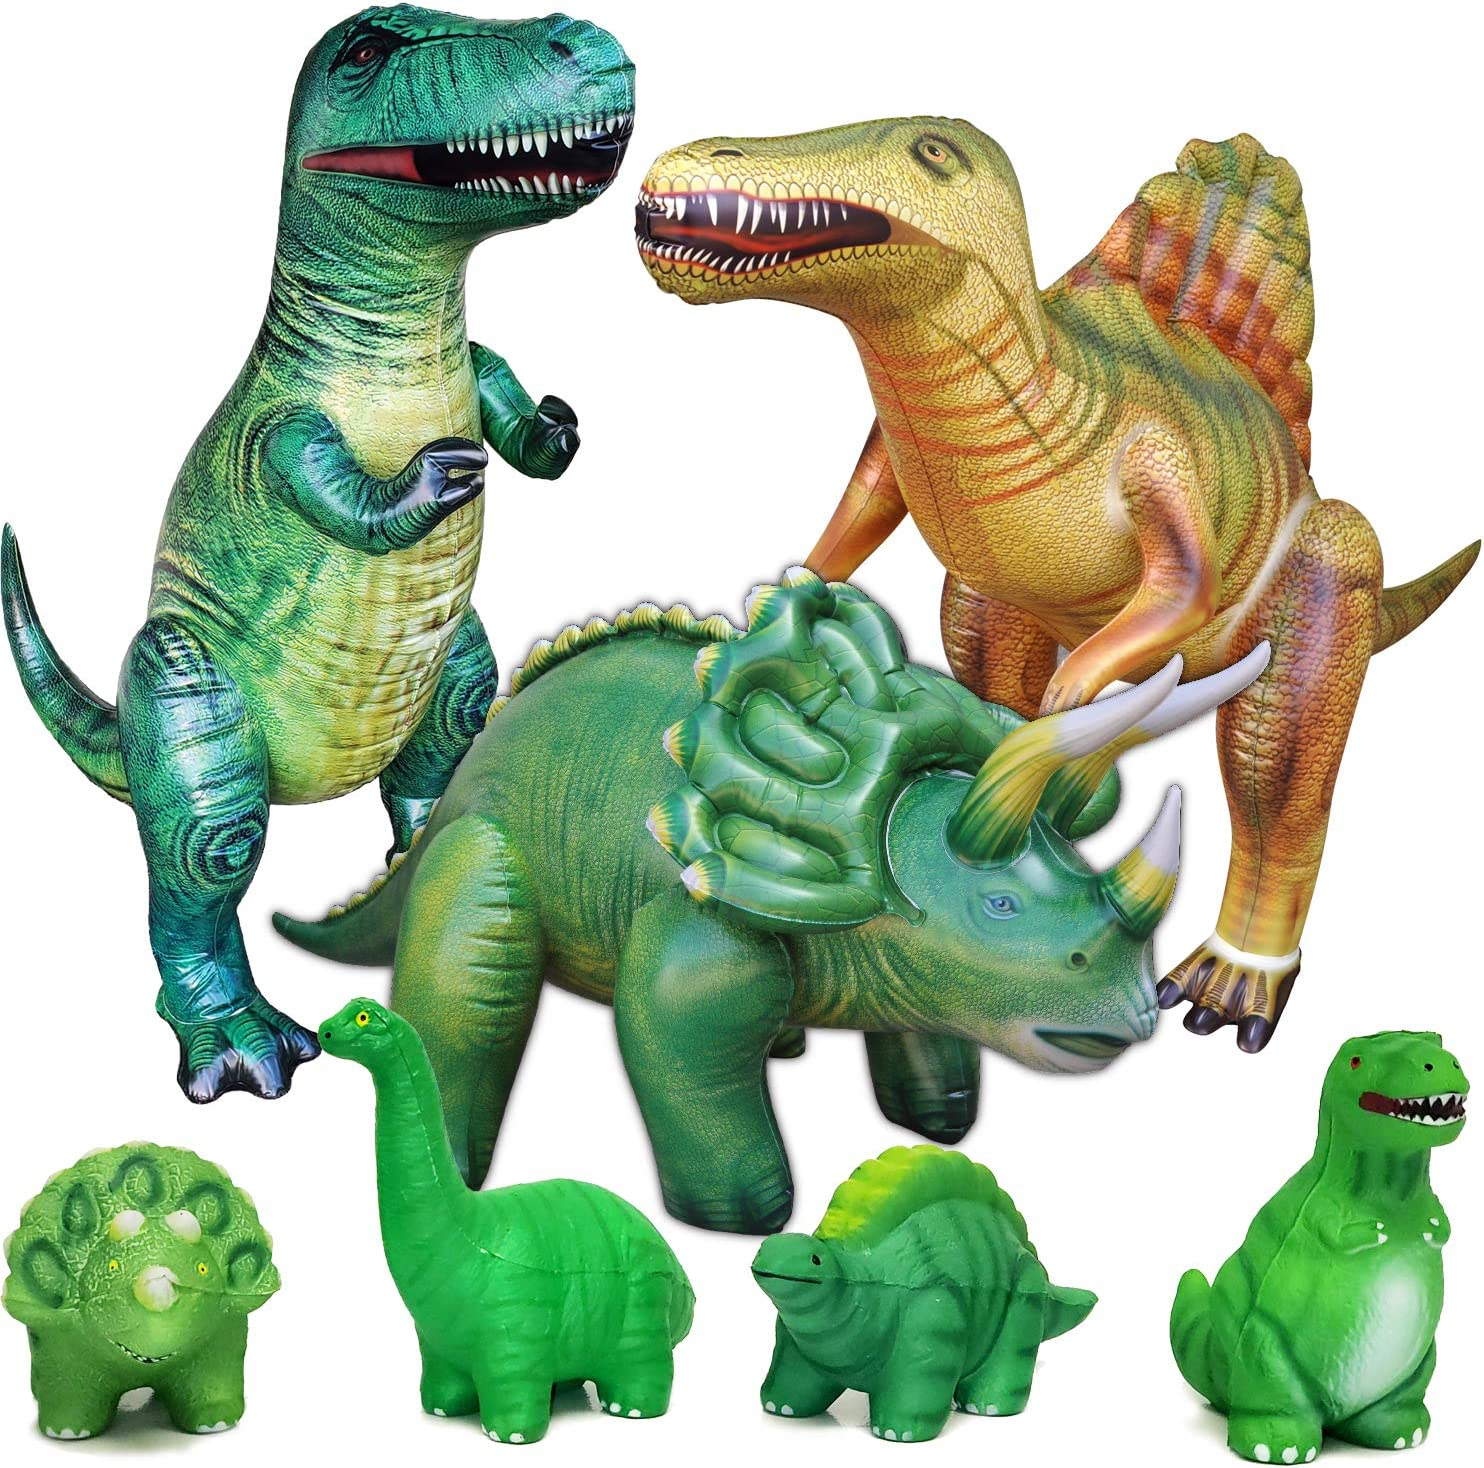 Jet Creations 7-pk Dinosaur Party Bundle Include Inflatable Trex Triceratops Spinosaurs, 4 Squishy Dinosaurs. Party Supplies Party Favors Birthday Home After School Toys for Boys and Girls 3+ years. JC-D3000